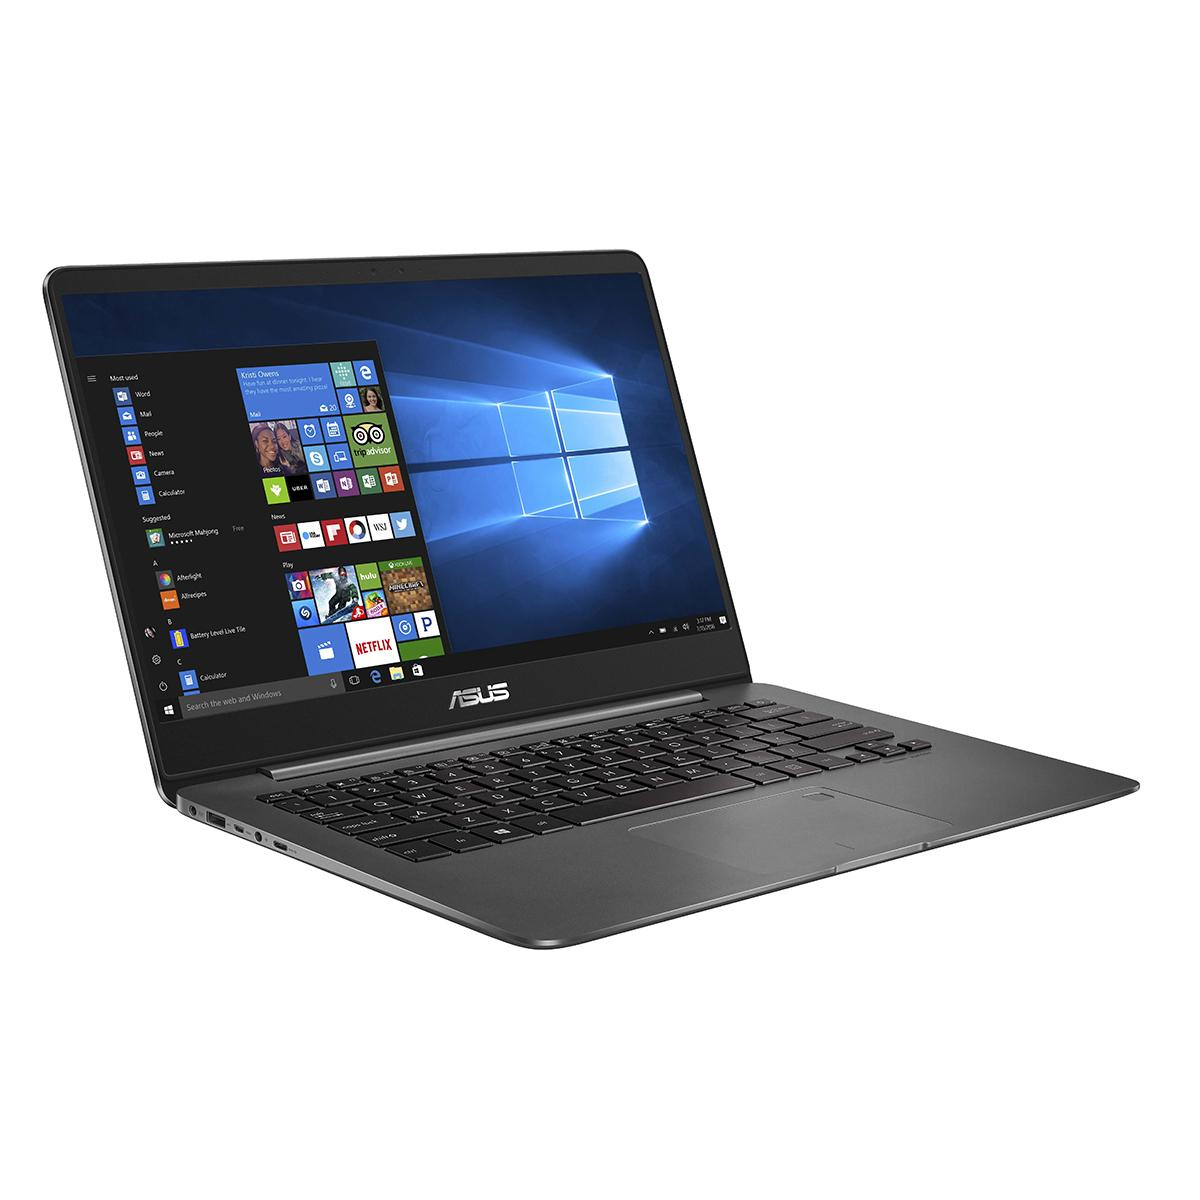 ASUS Zenbook UX430UN-GV115T (14 FHD IPS,Intel Core i5-8250U,8GB,NVIDIA GeForce MX150 2GB,512GB SSD)